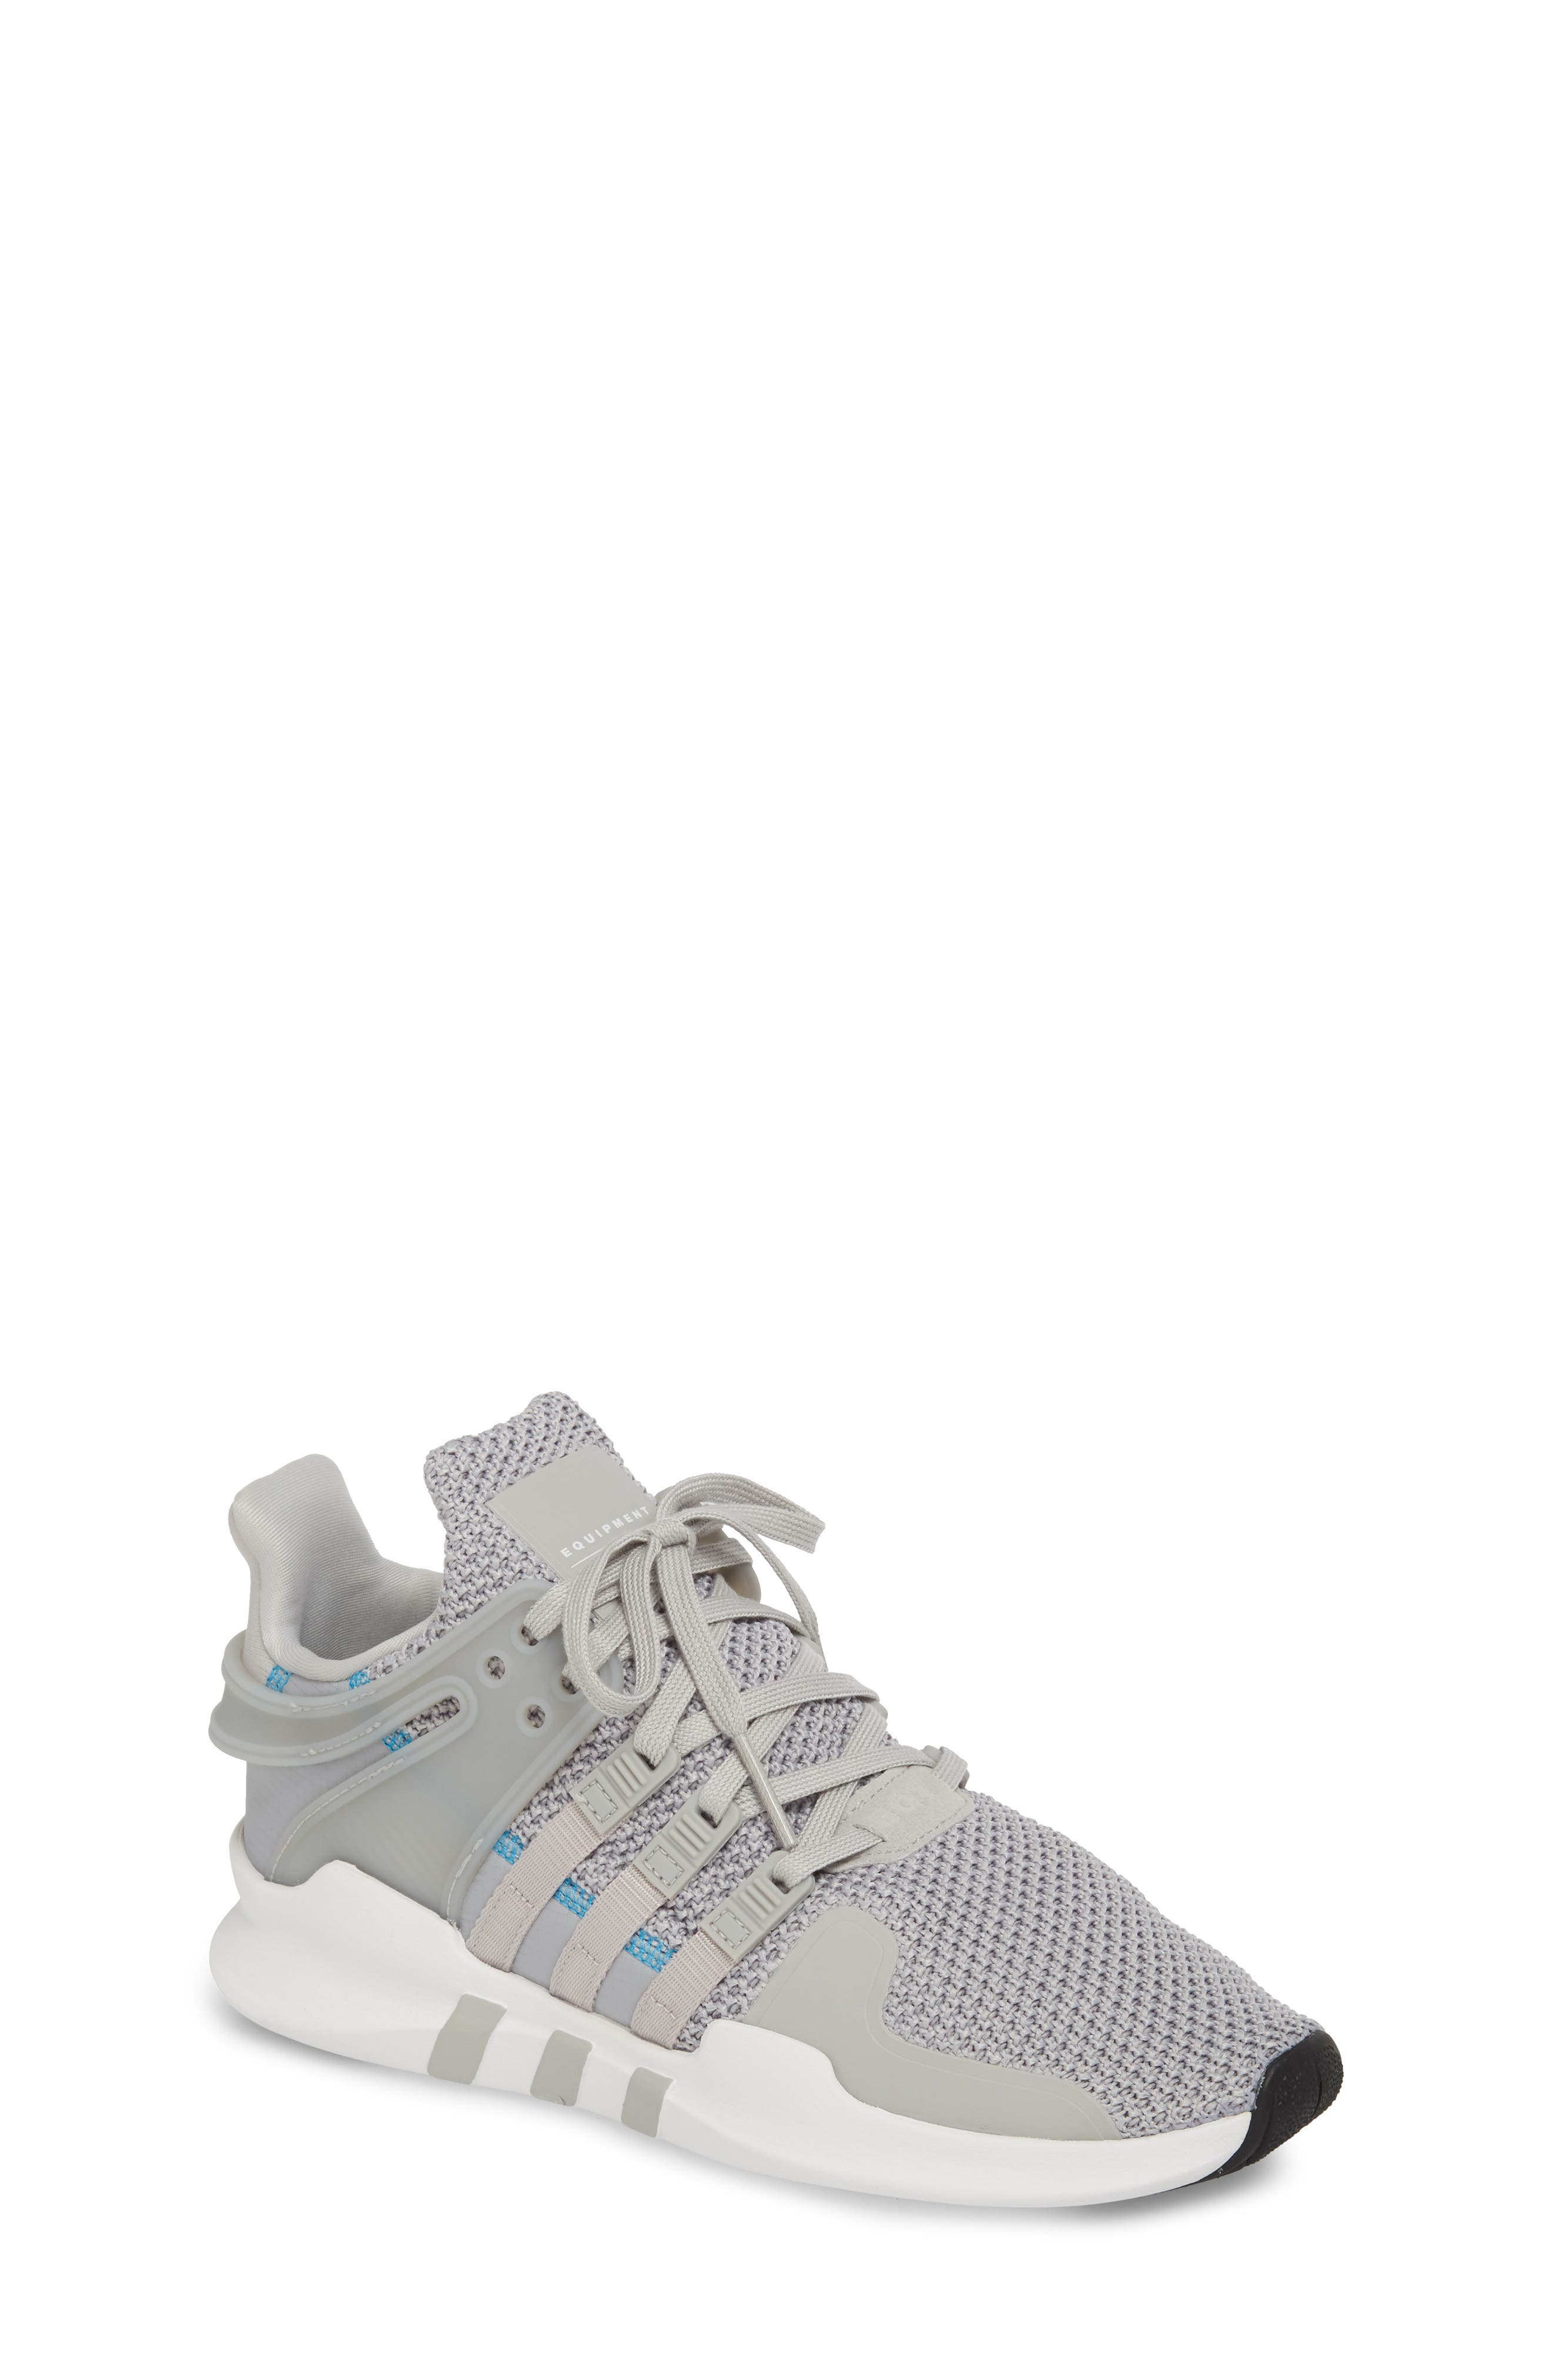 EQT Support Adv Sneaker,                         Main,                         color, Grey / Grey / White